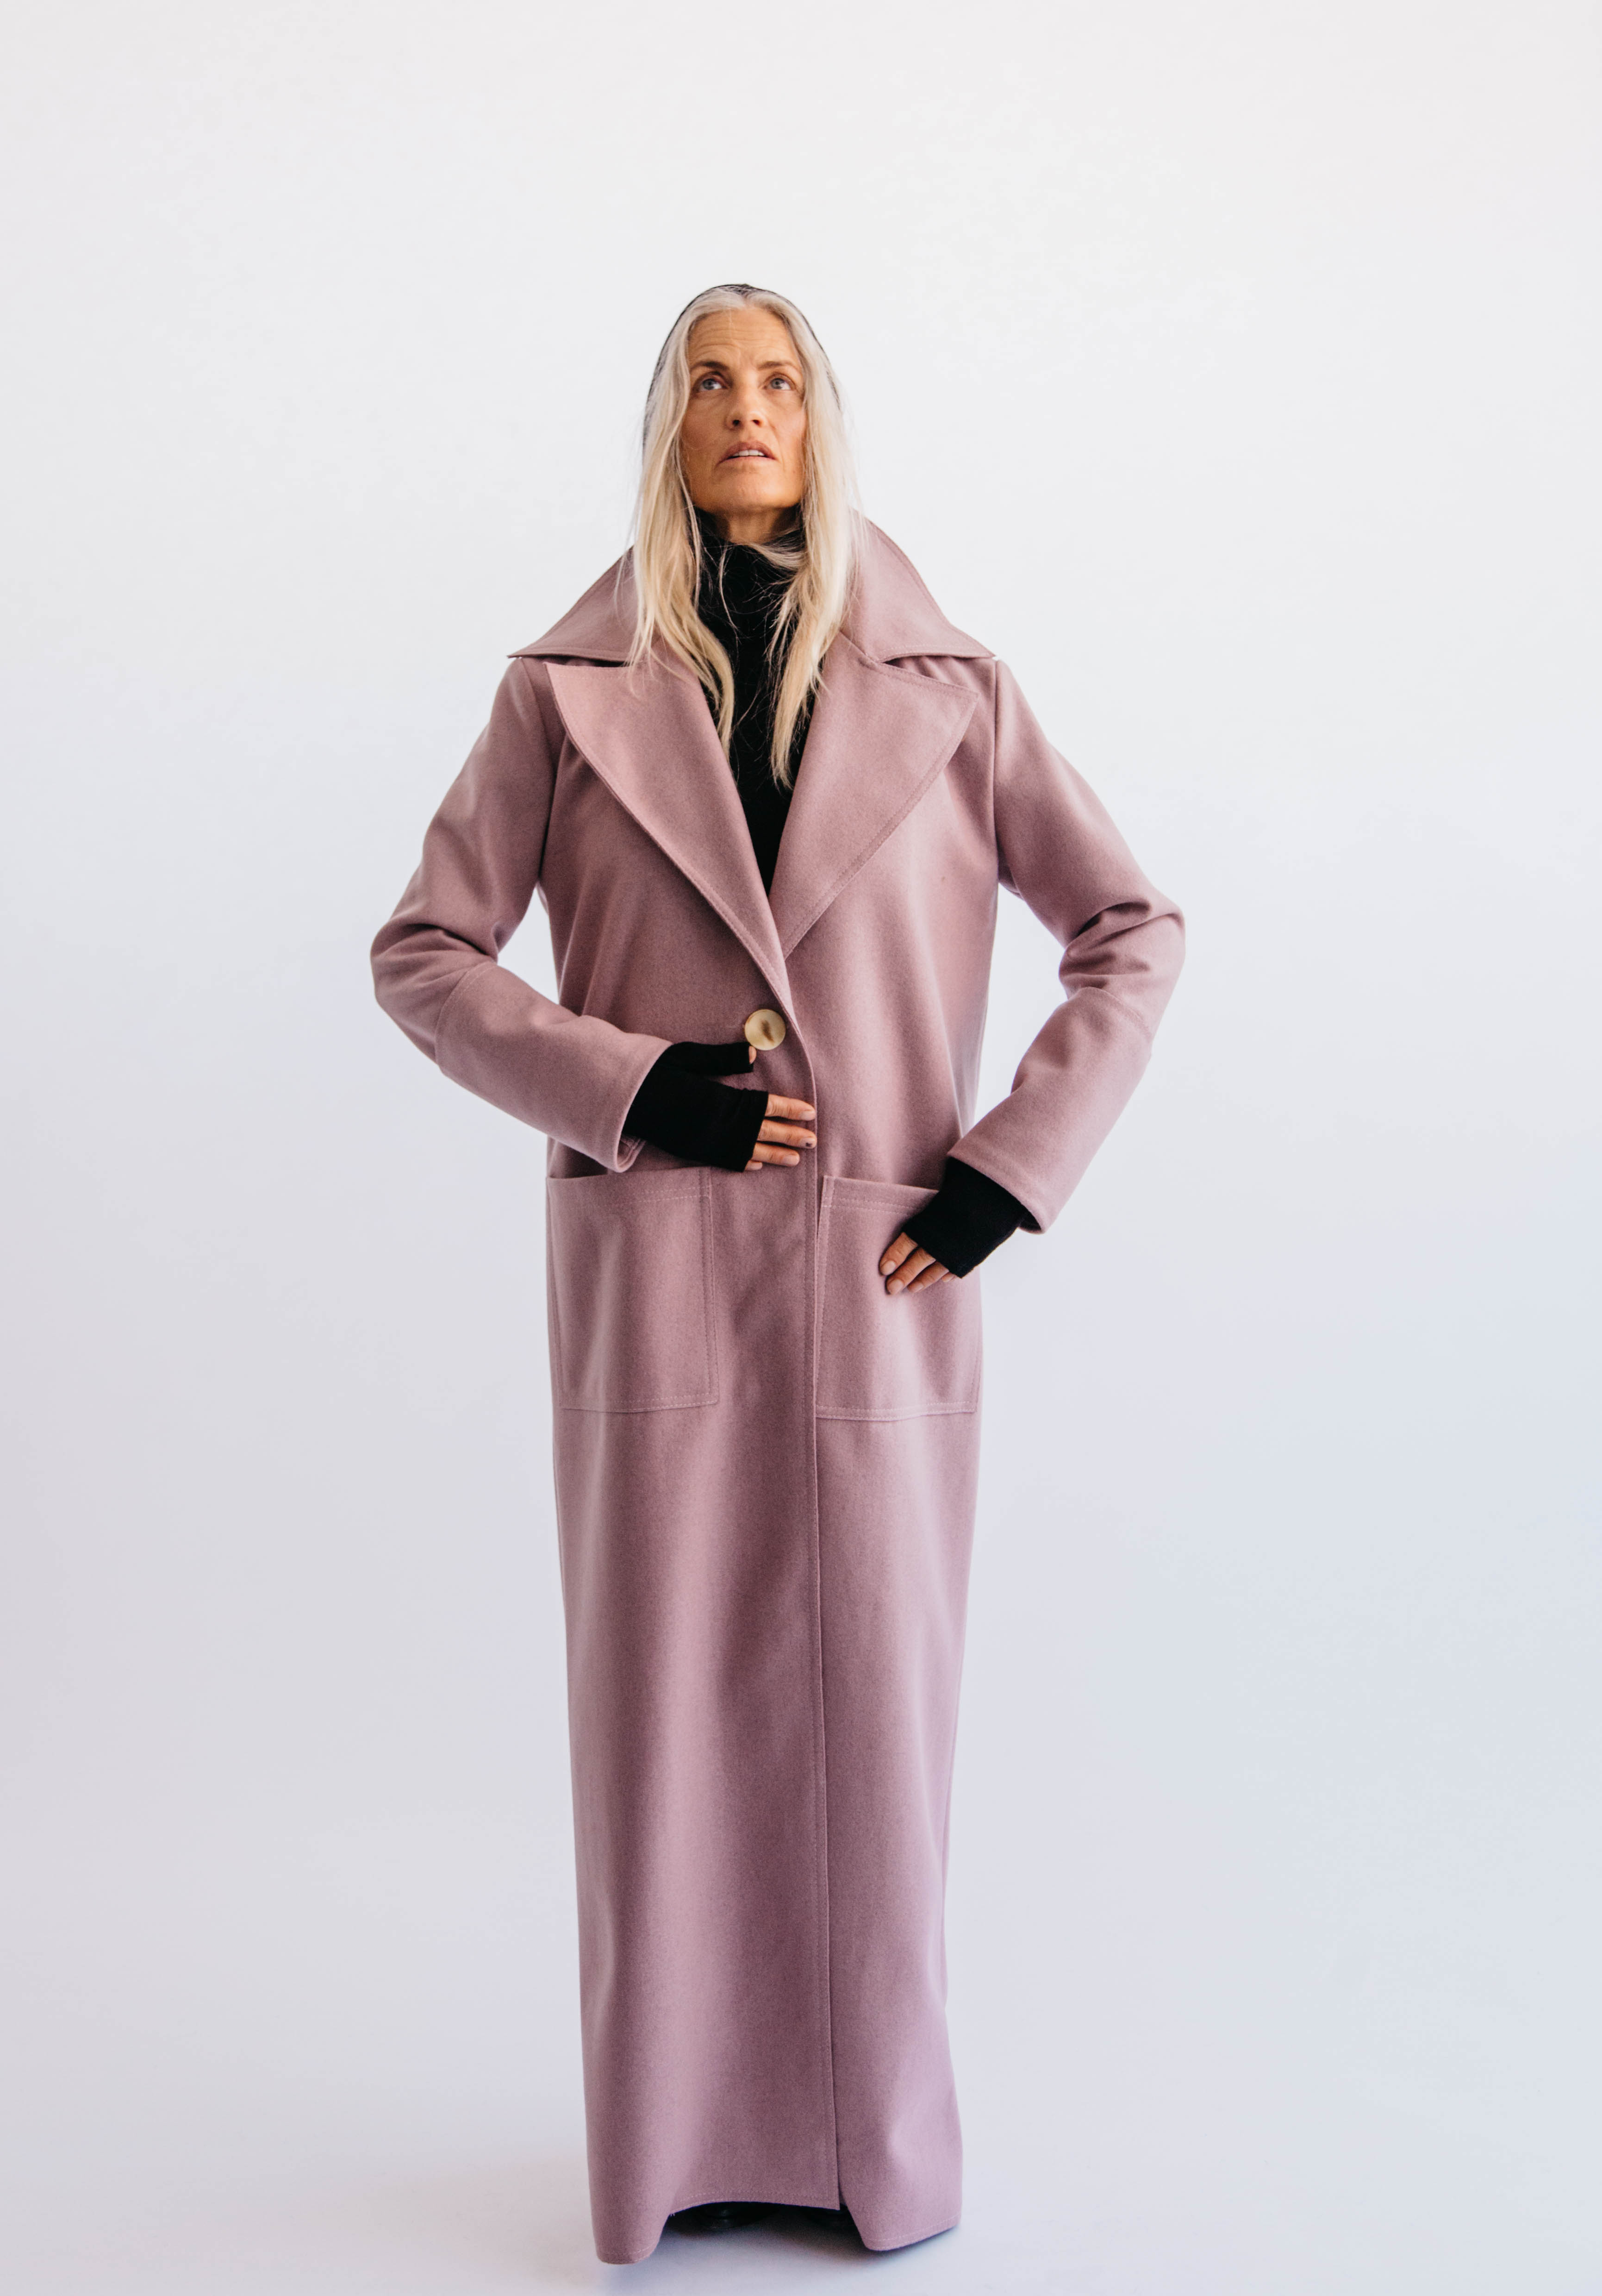 Sleek In Lilac Coat by Mariam Alsibai on curated-crowd.com